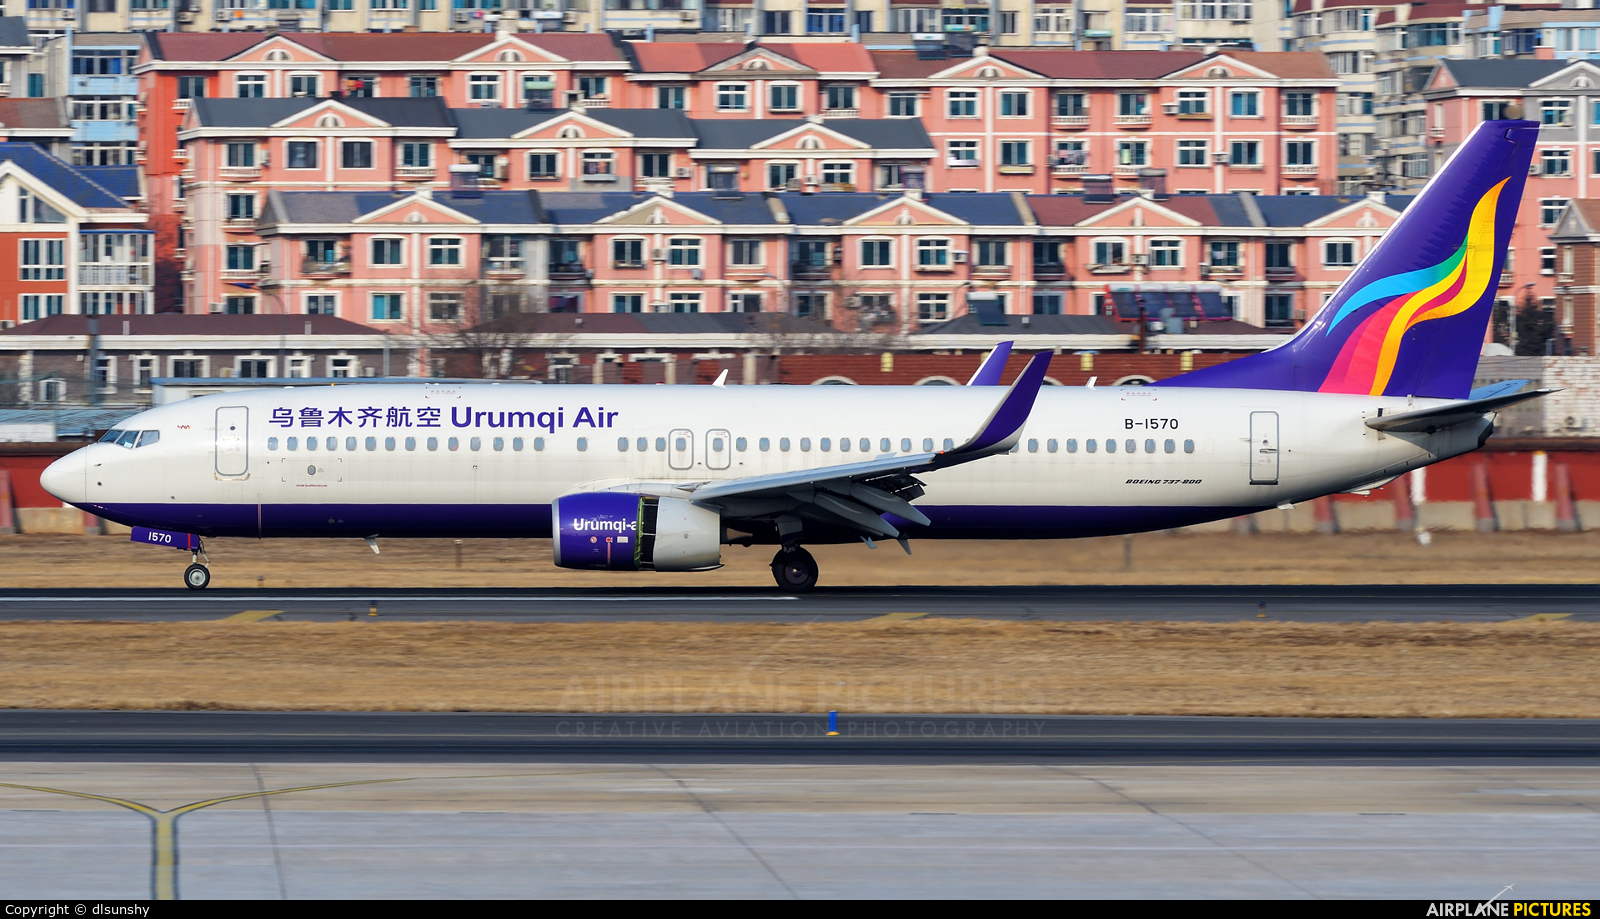 Urumqi Air B-1570 aircraft at Dalian Zhoushuizi Int'l